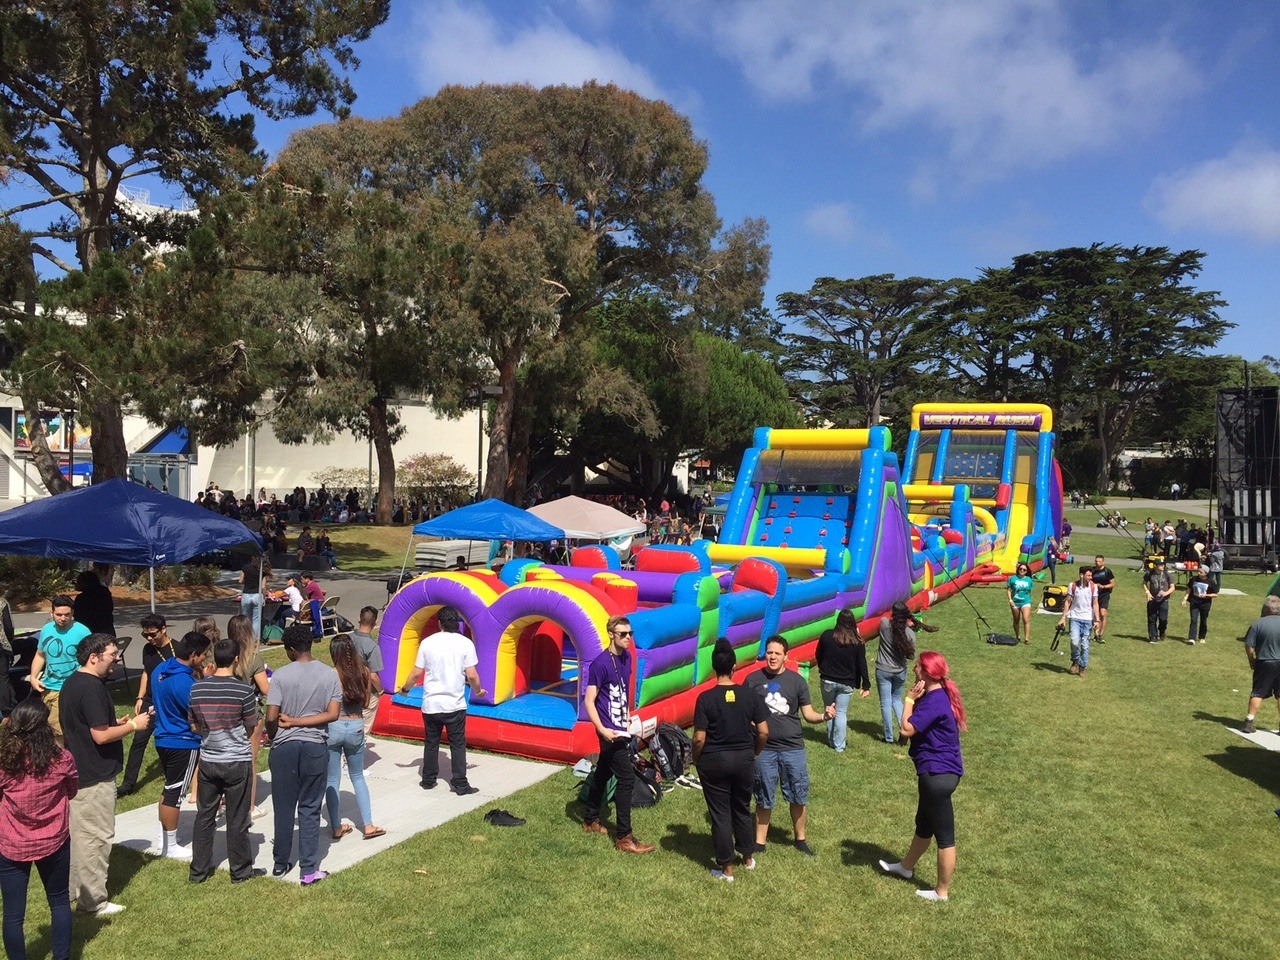 The Beast Obstacle Course Lets Party